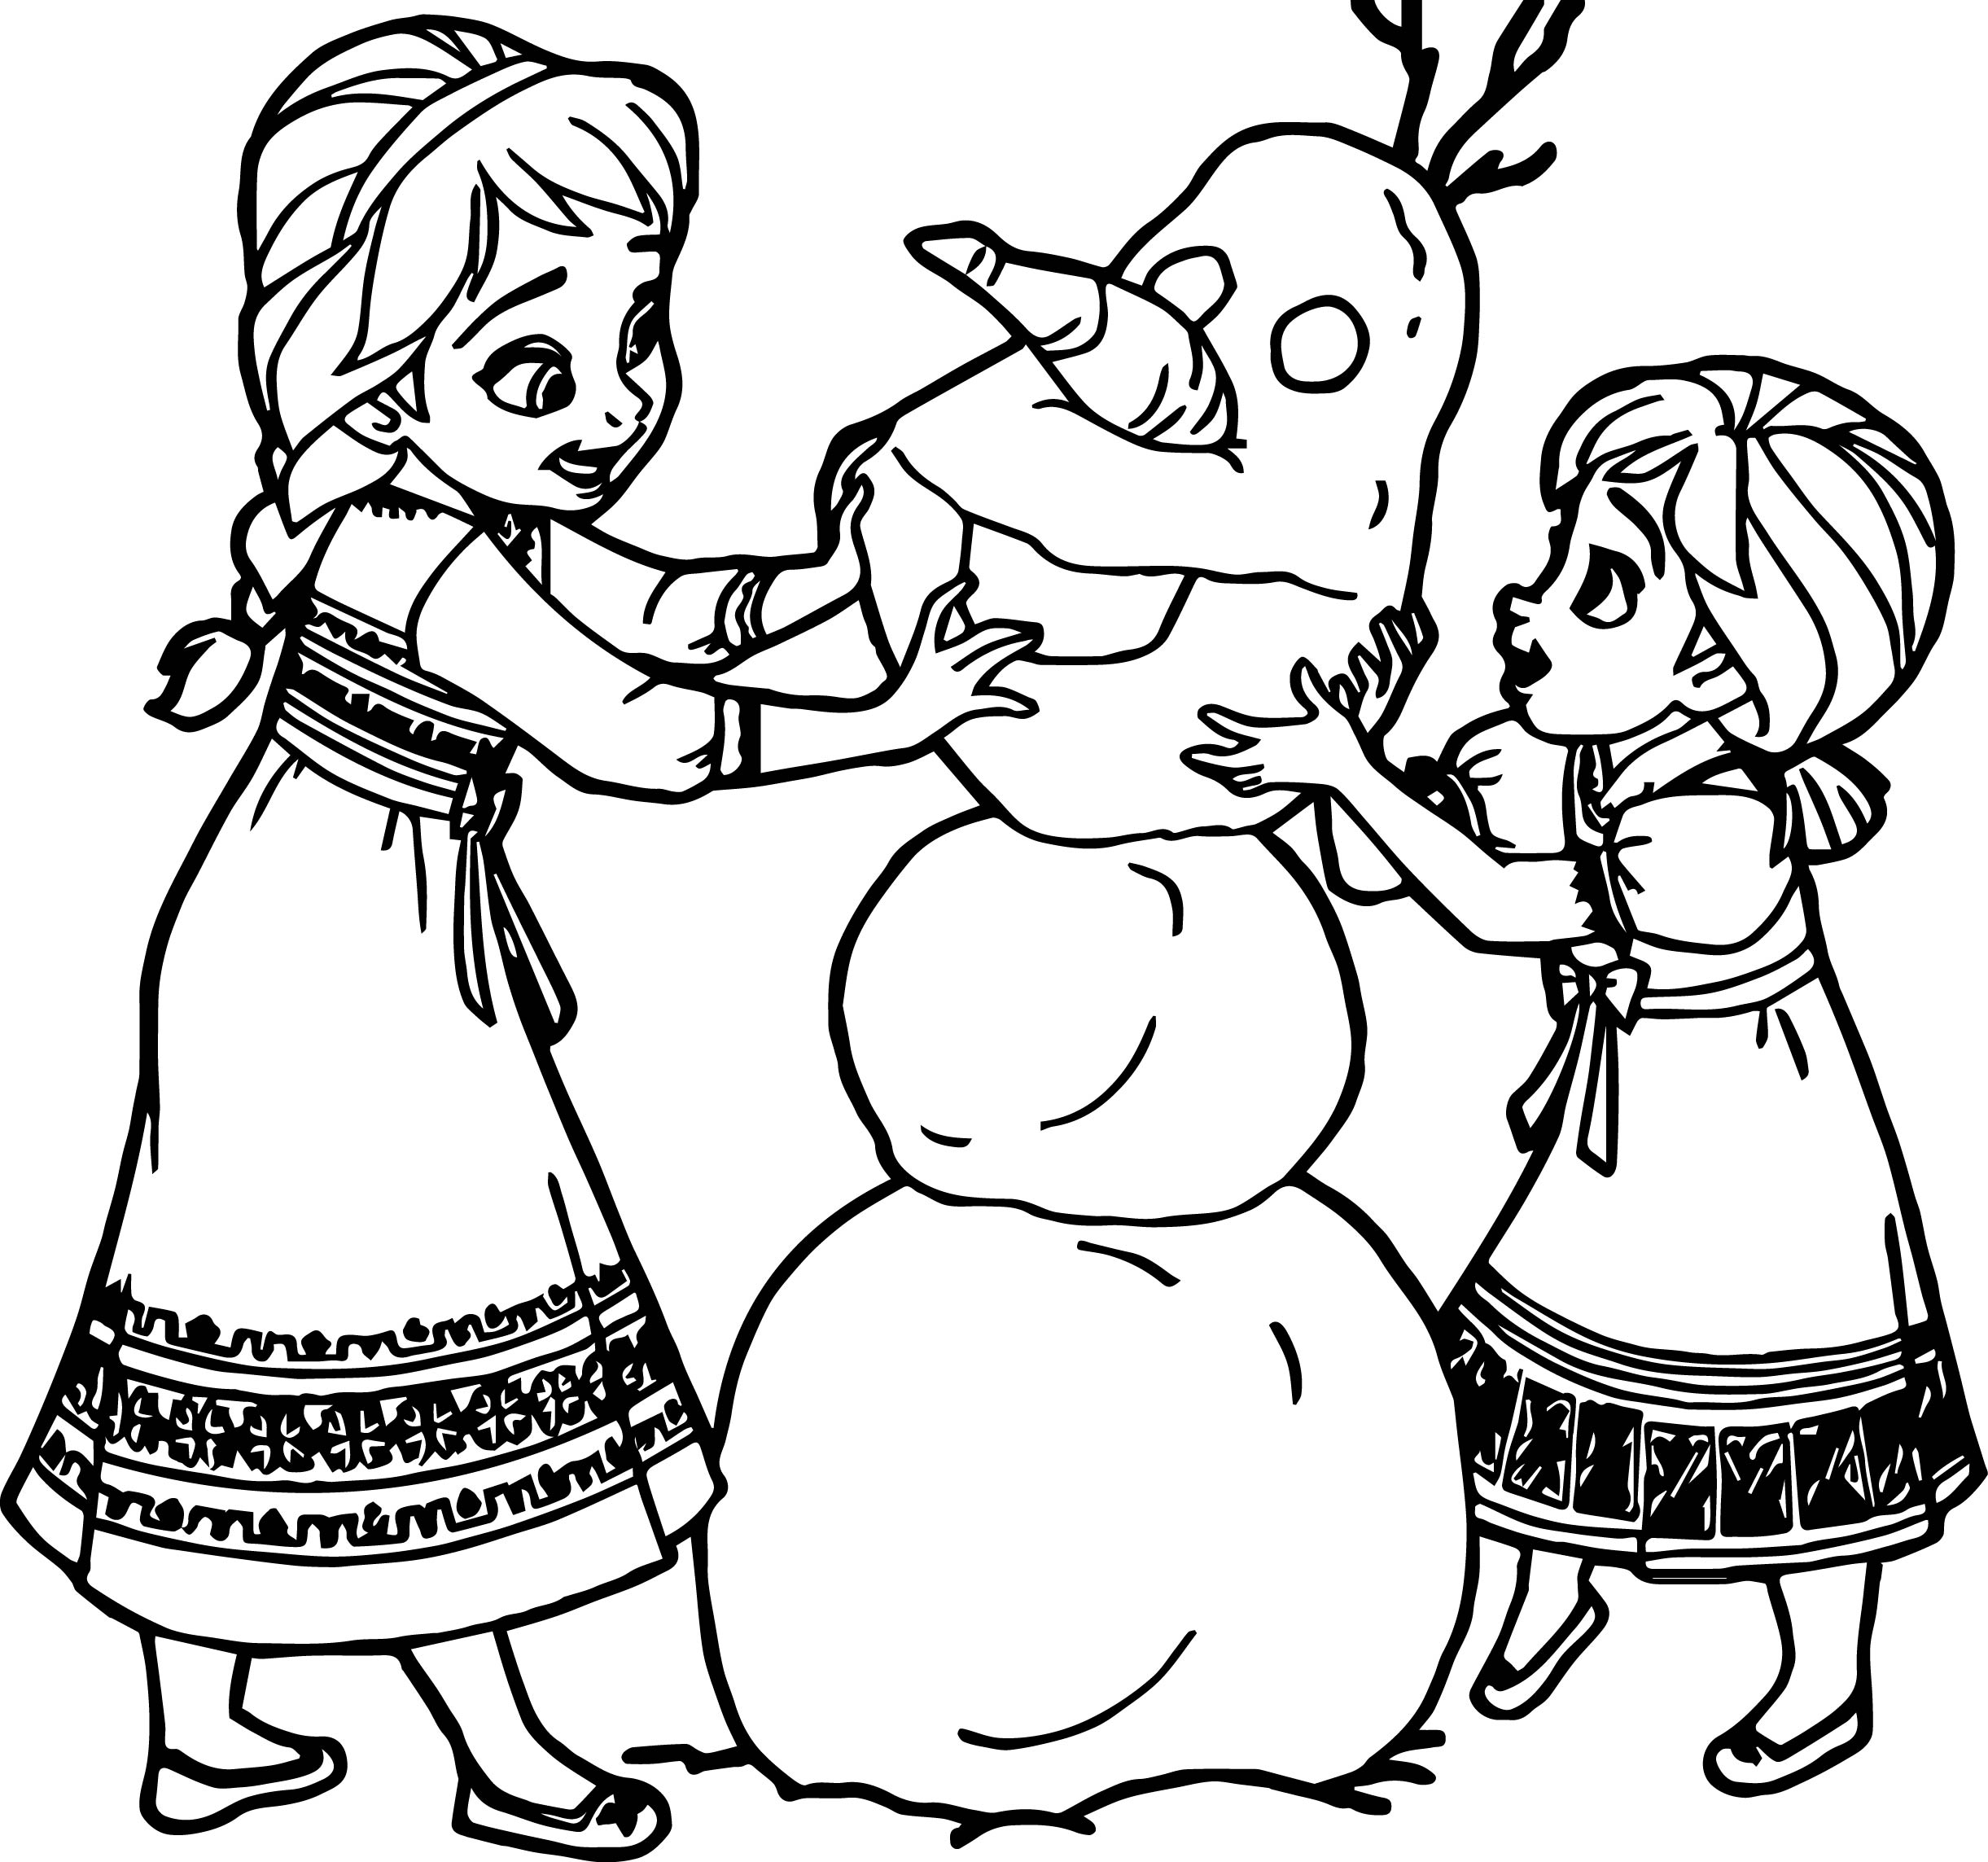 coloring book ~ Elsadna Coloring Book Pages Frozen Baby Games For ... | 2287x2442